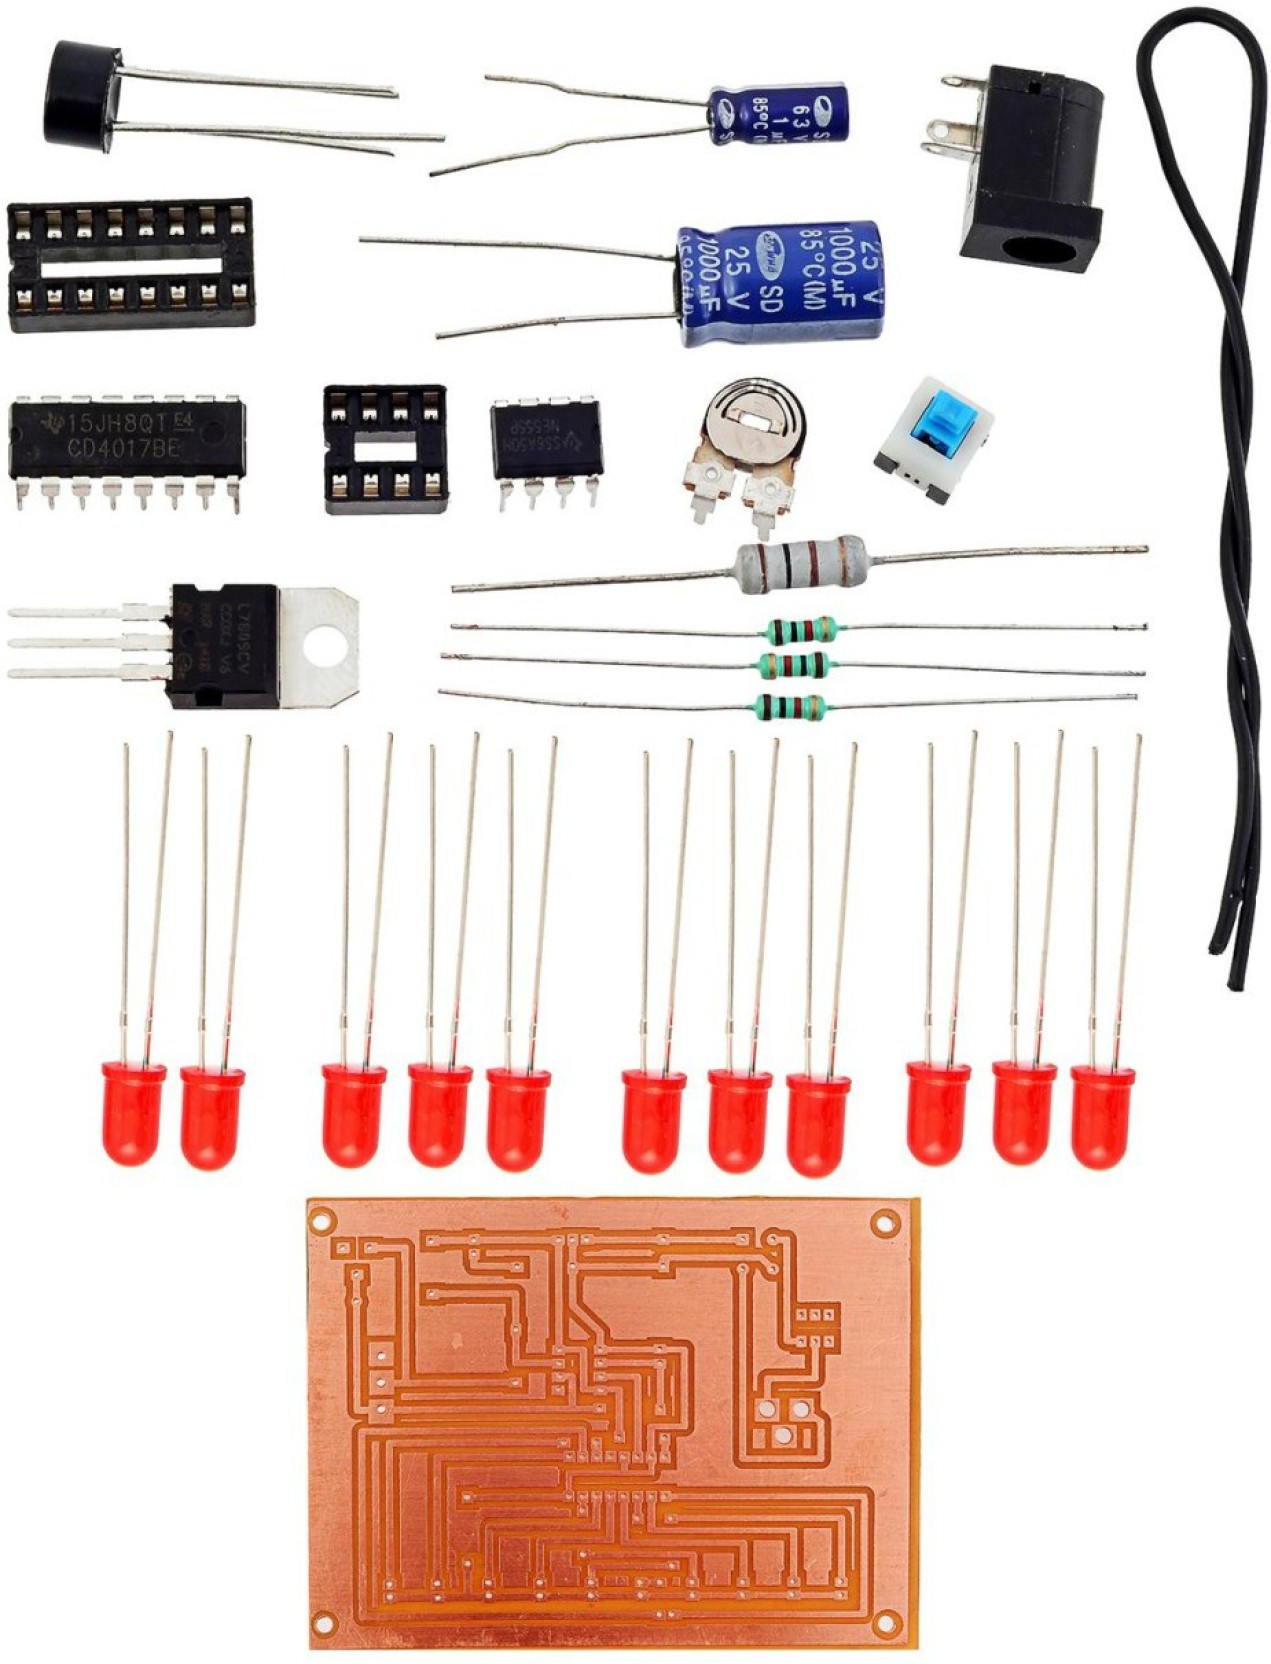 Kitsguru Led Chaser With Variable Speed Lgkt078 Educational Circuit On 3 Diagram Electronic Hobby Kit Add To Cart